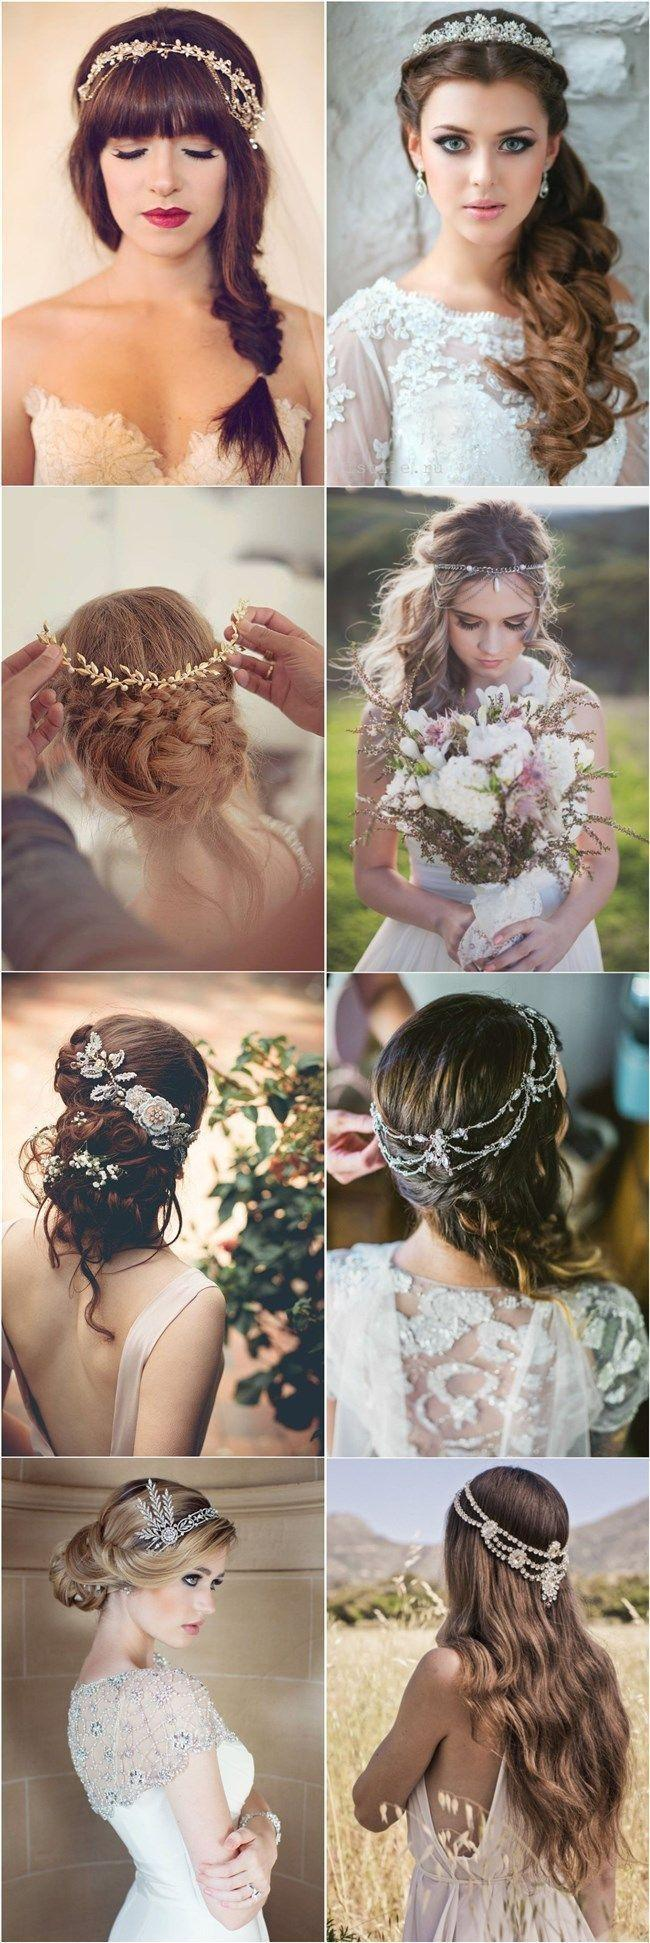 Hochzeit - 30 Amazing Wedding Hairstyles With Headpiece